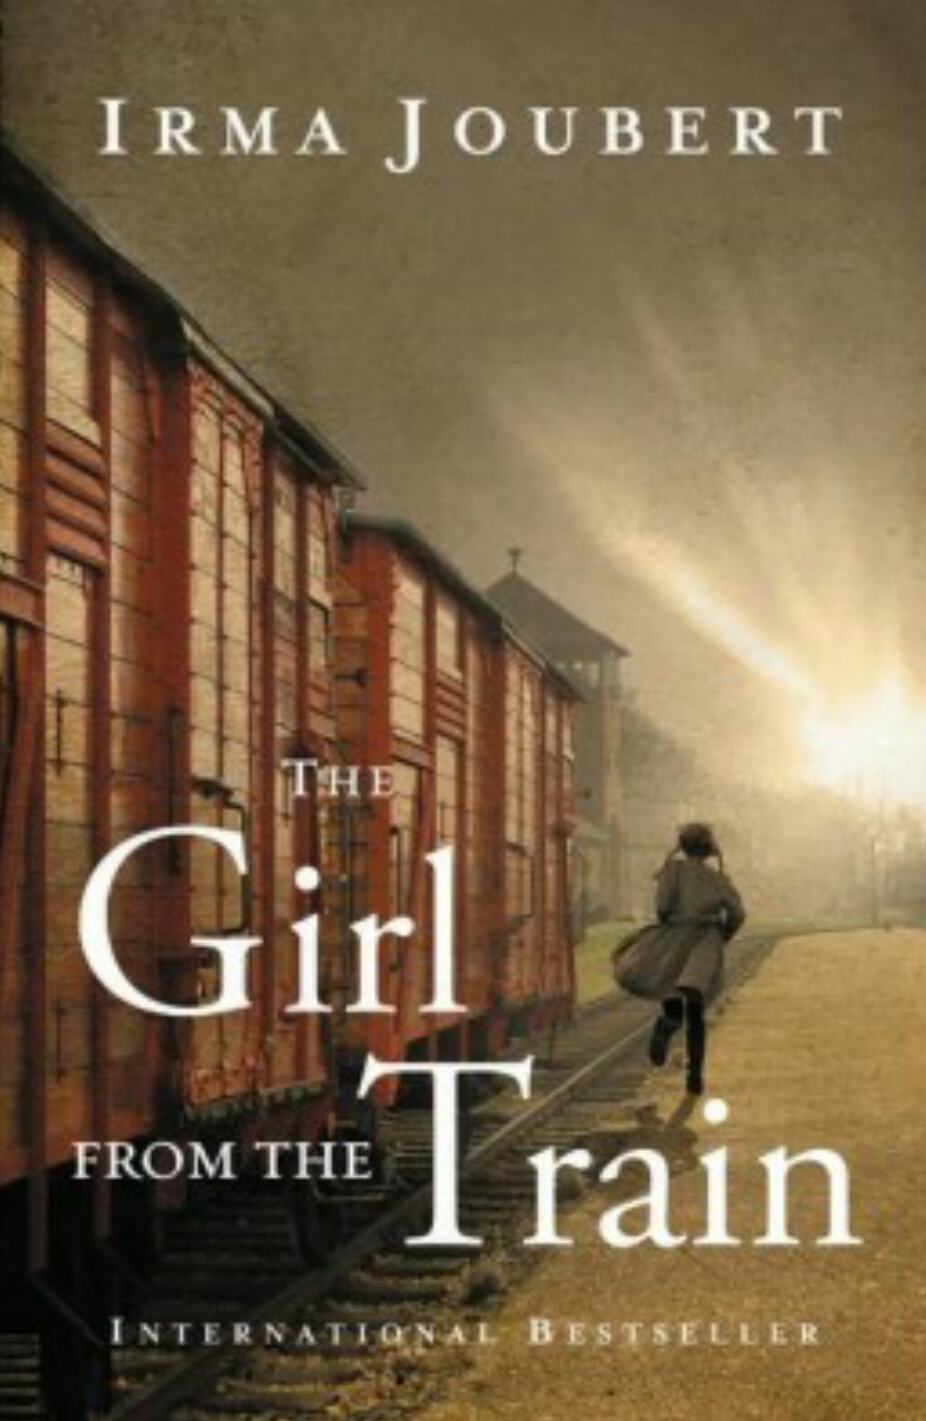 The Girl From the Train by Irma Joubert    PUBLISHED JANUARY 1, 2007   GENRES: YOUNG ADULT/ADULT FICTION, HISTORICAL FICTION   PAGES:   379   FORMAT:   PAPERBACK   SOURCE:   ARC   PACING: {3.5/5}